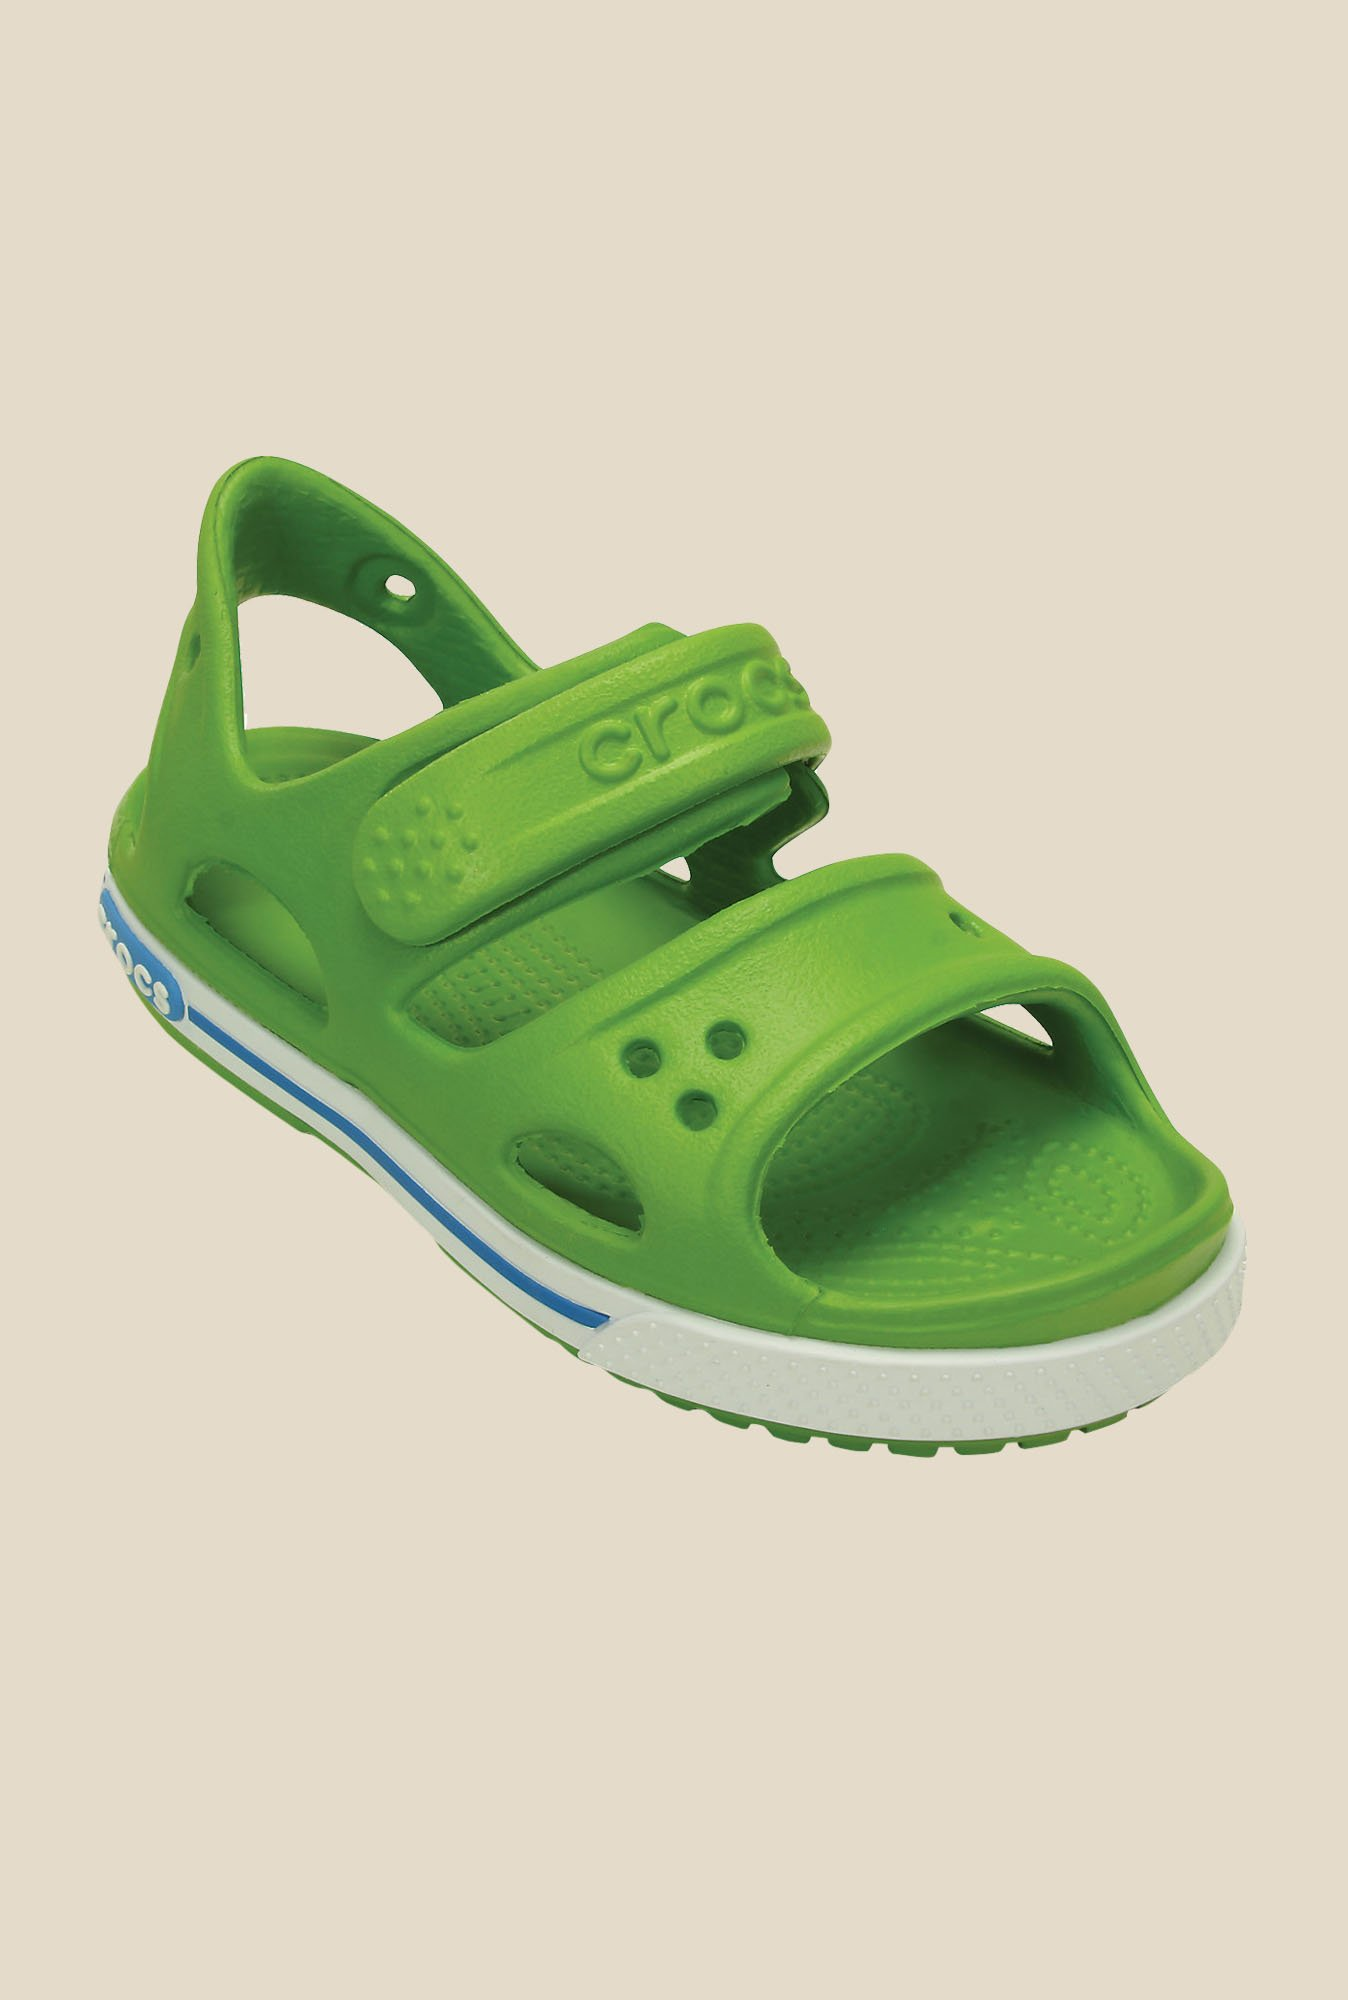 Crocs Crocband II PS Parrot Green & Ocean Sandals